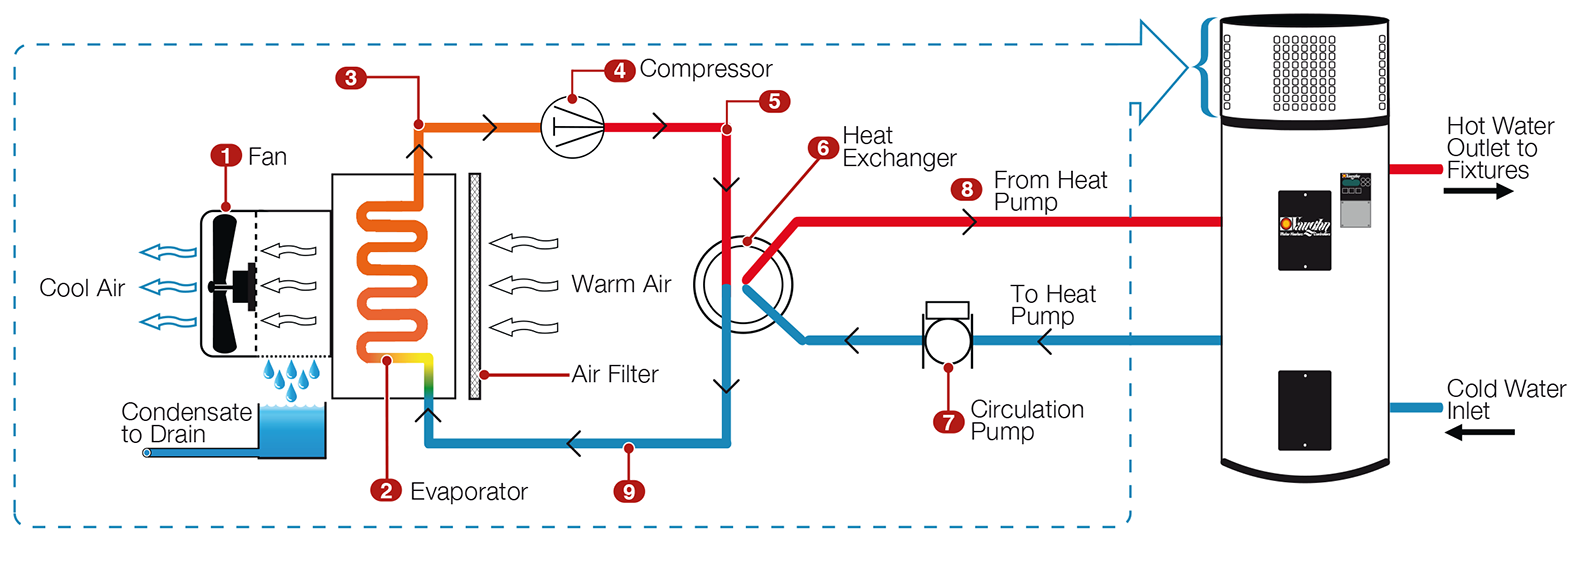 High efficiency electric water heater vaughn heat pump operational diagram ccuart Gallery